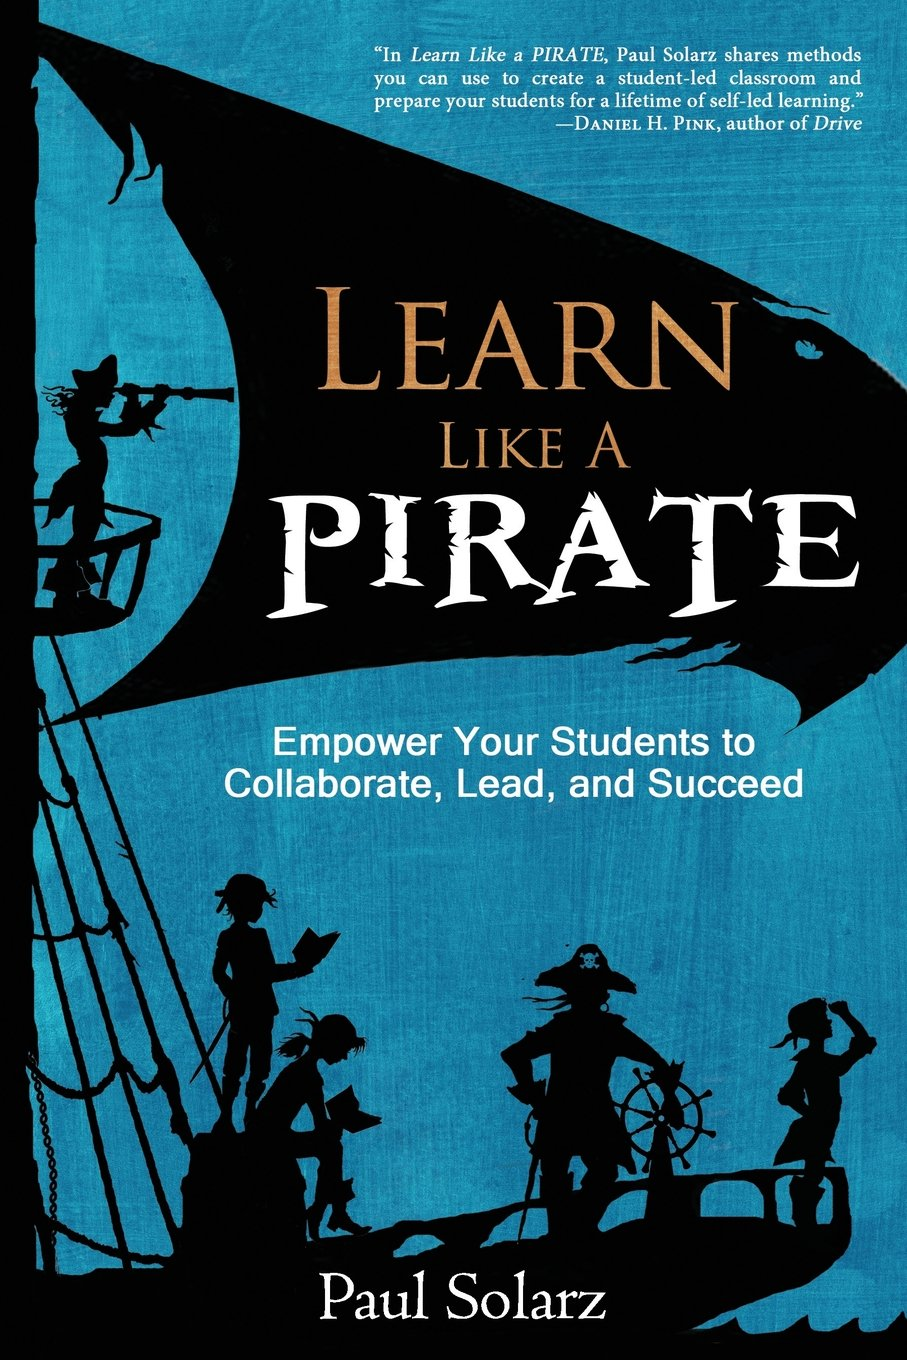 Geared more toward elementary teachers, Learn Like a Pirate focuses on building a collabroative classrooms that allows students to activly engage in tasks, lead, work together, and foster a community of learning.